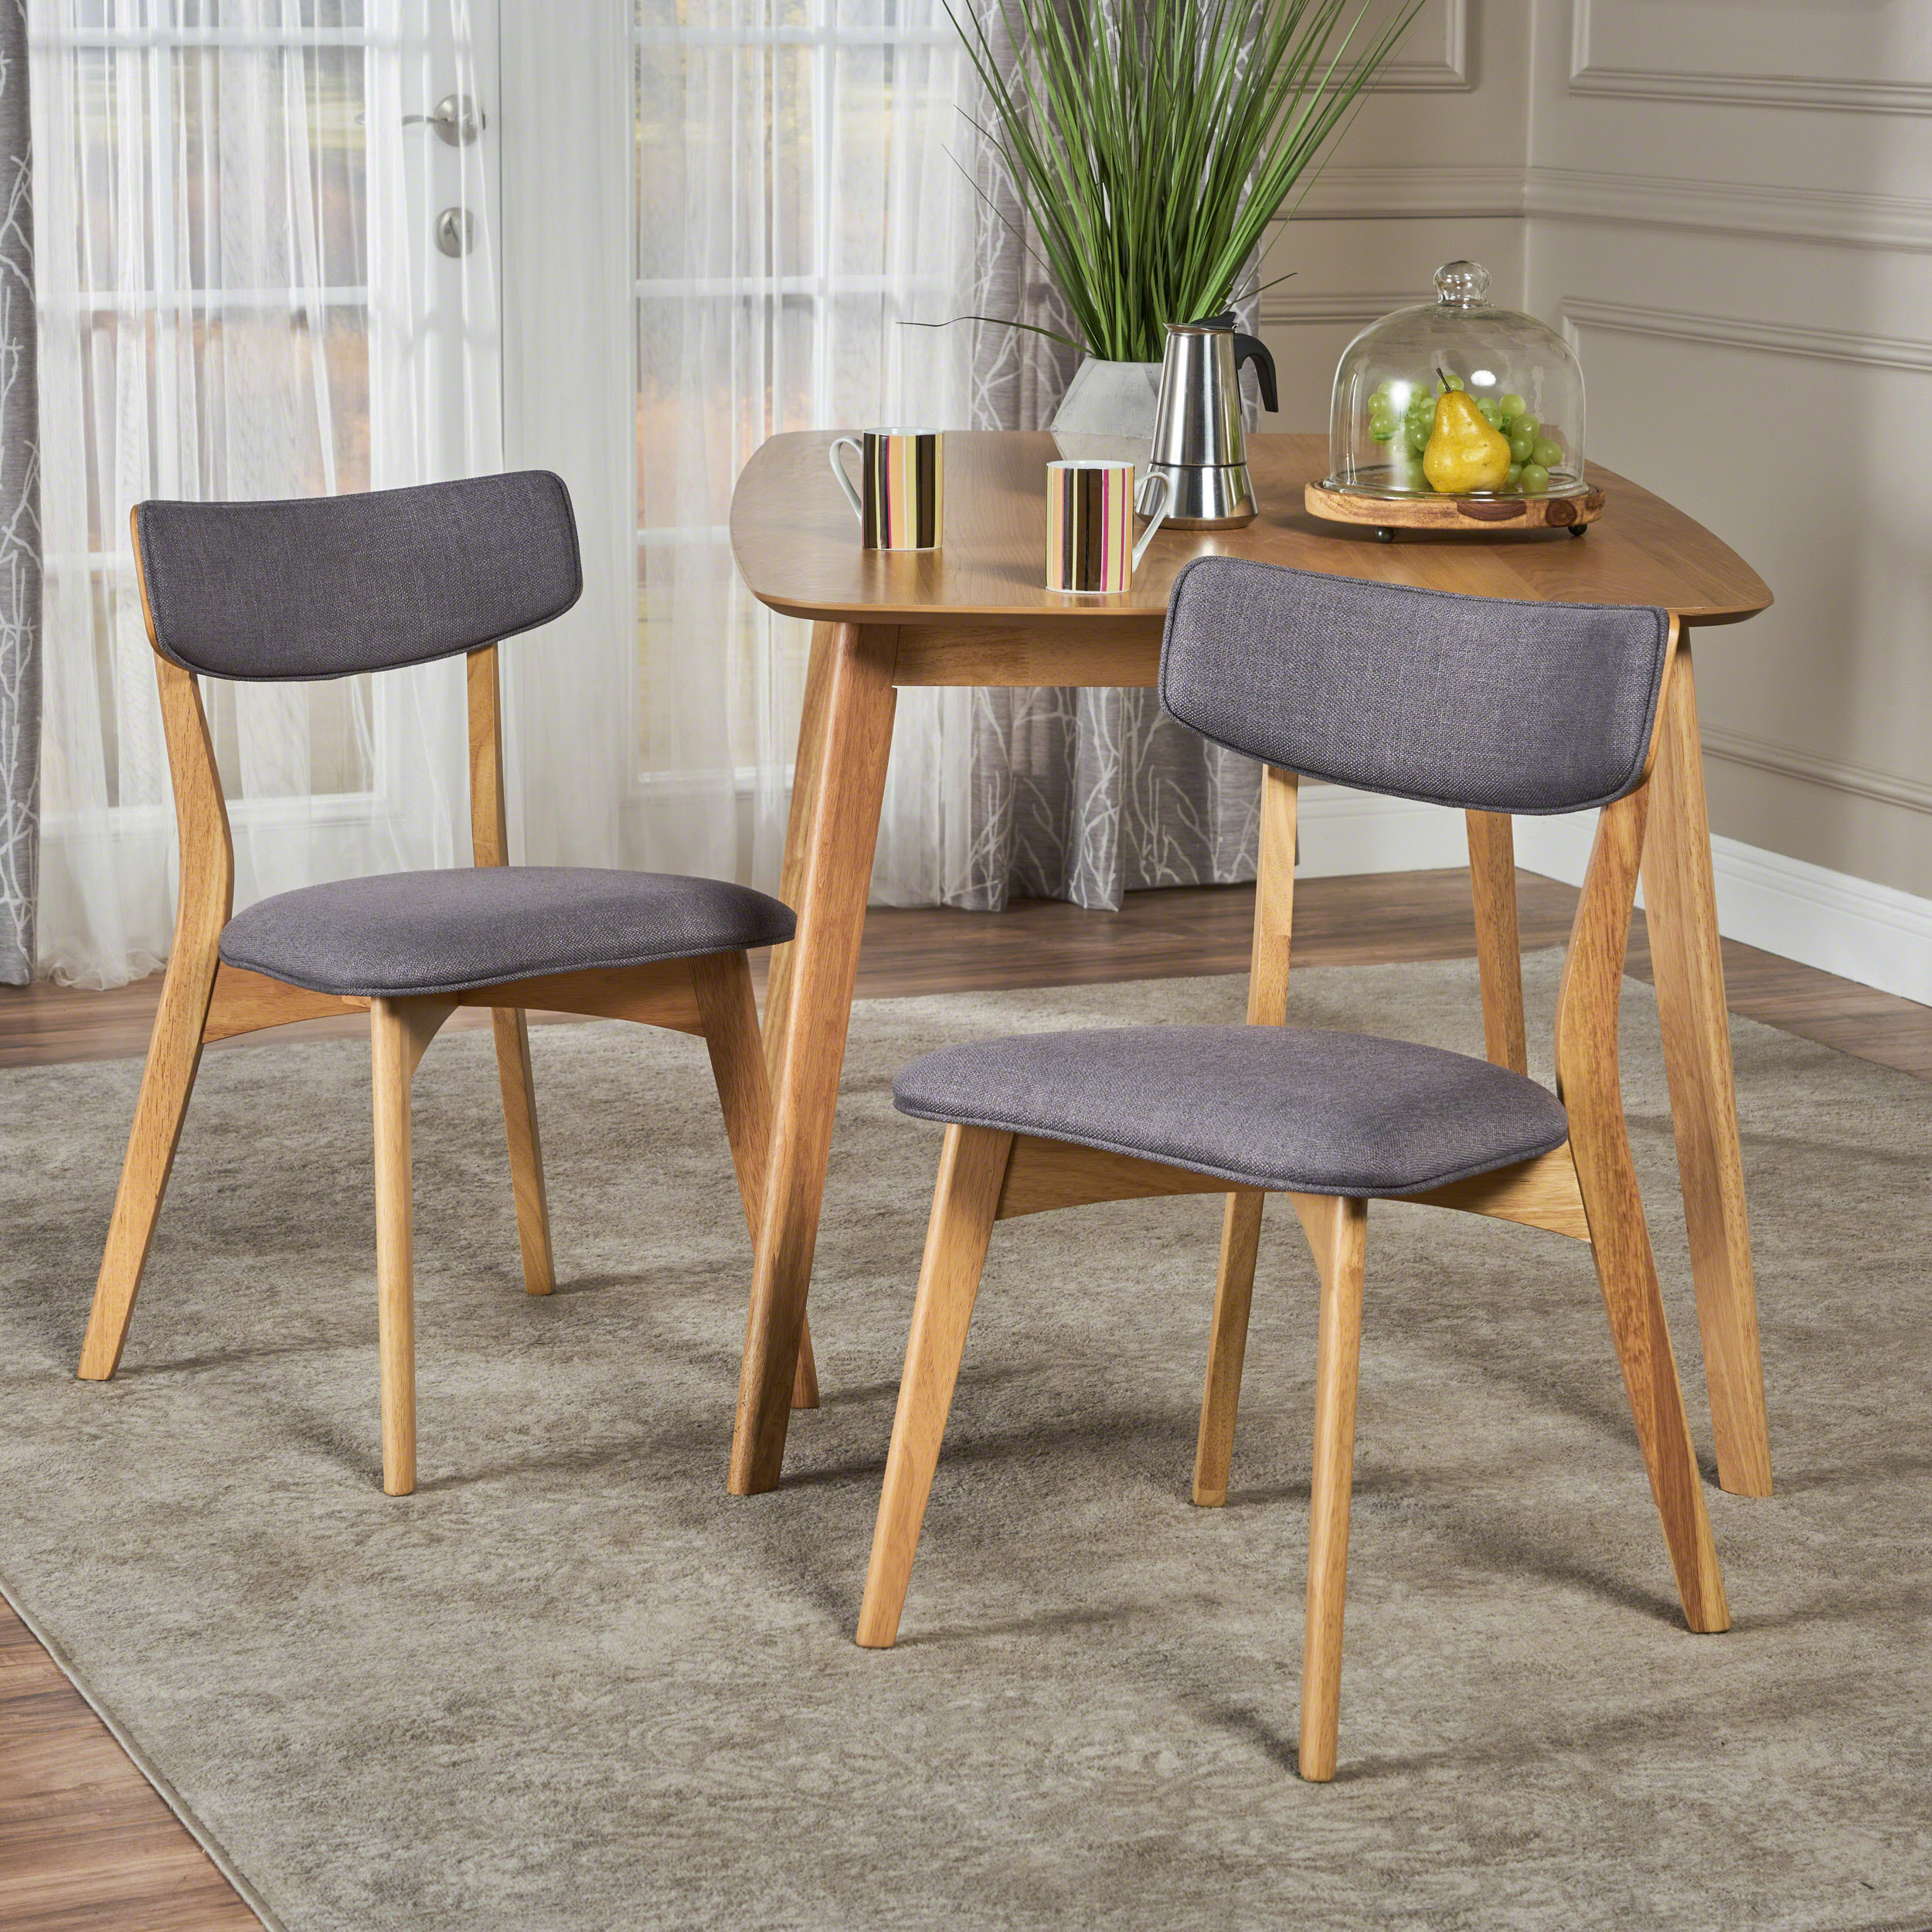 Astounding Molly Mid Century Modern Fabric Dining Chairs With Rubberwood Frame Set Of 2 Dark Grey And Natural Oak Download Free Architecture Designs Scobabritishbridgeorg